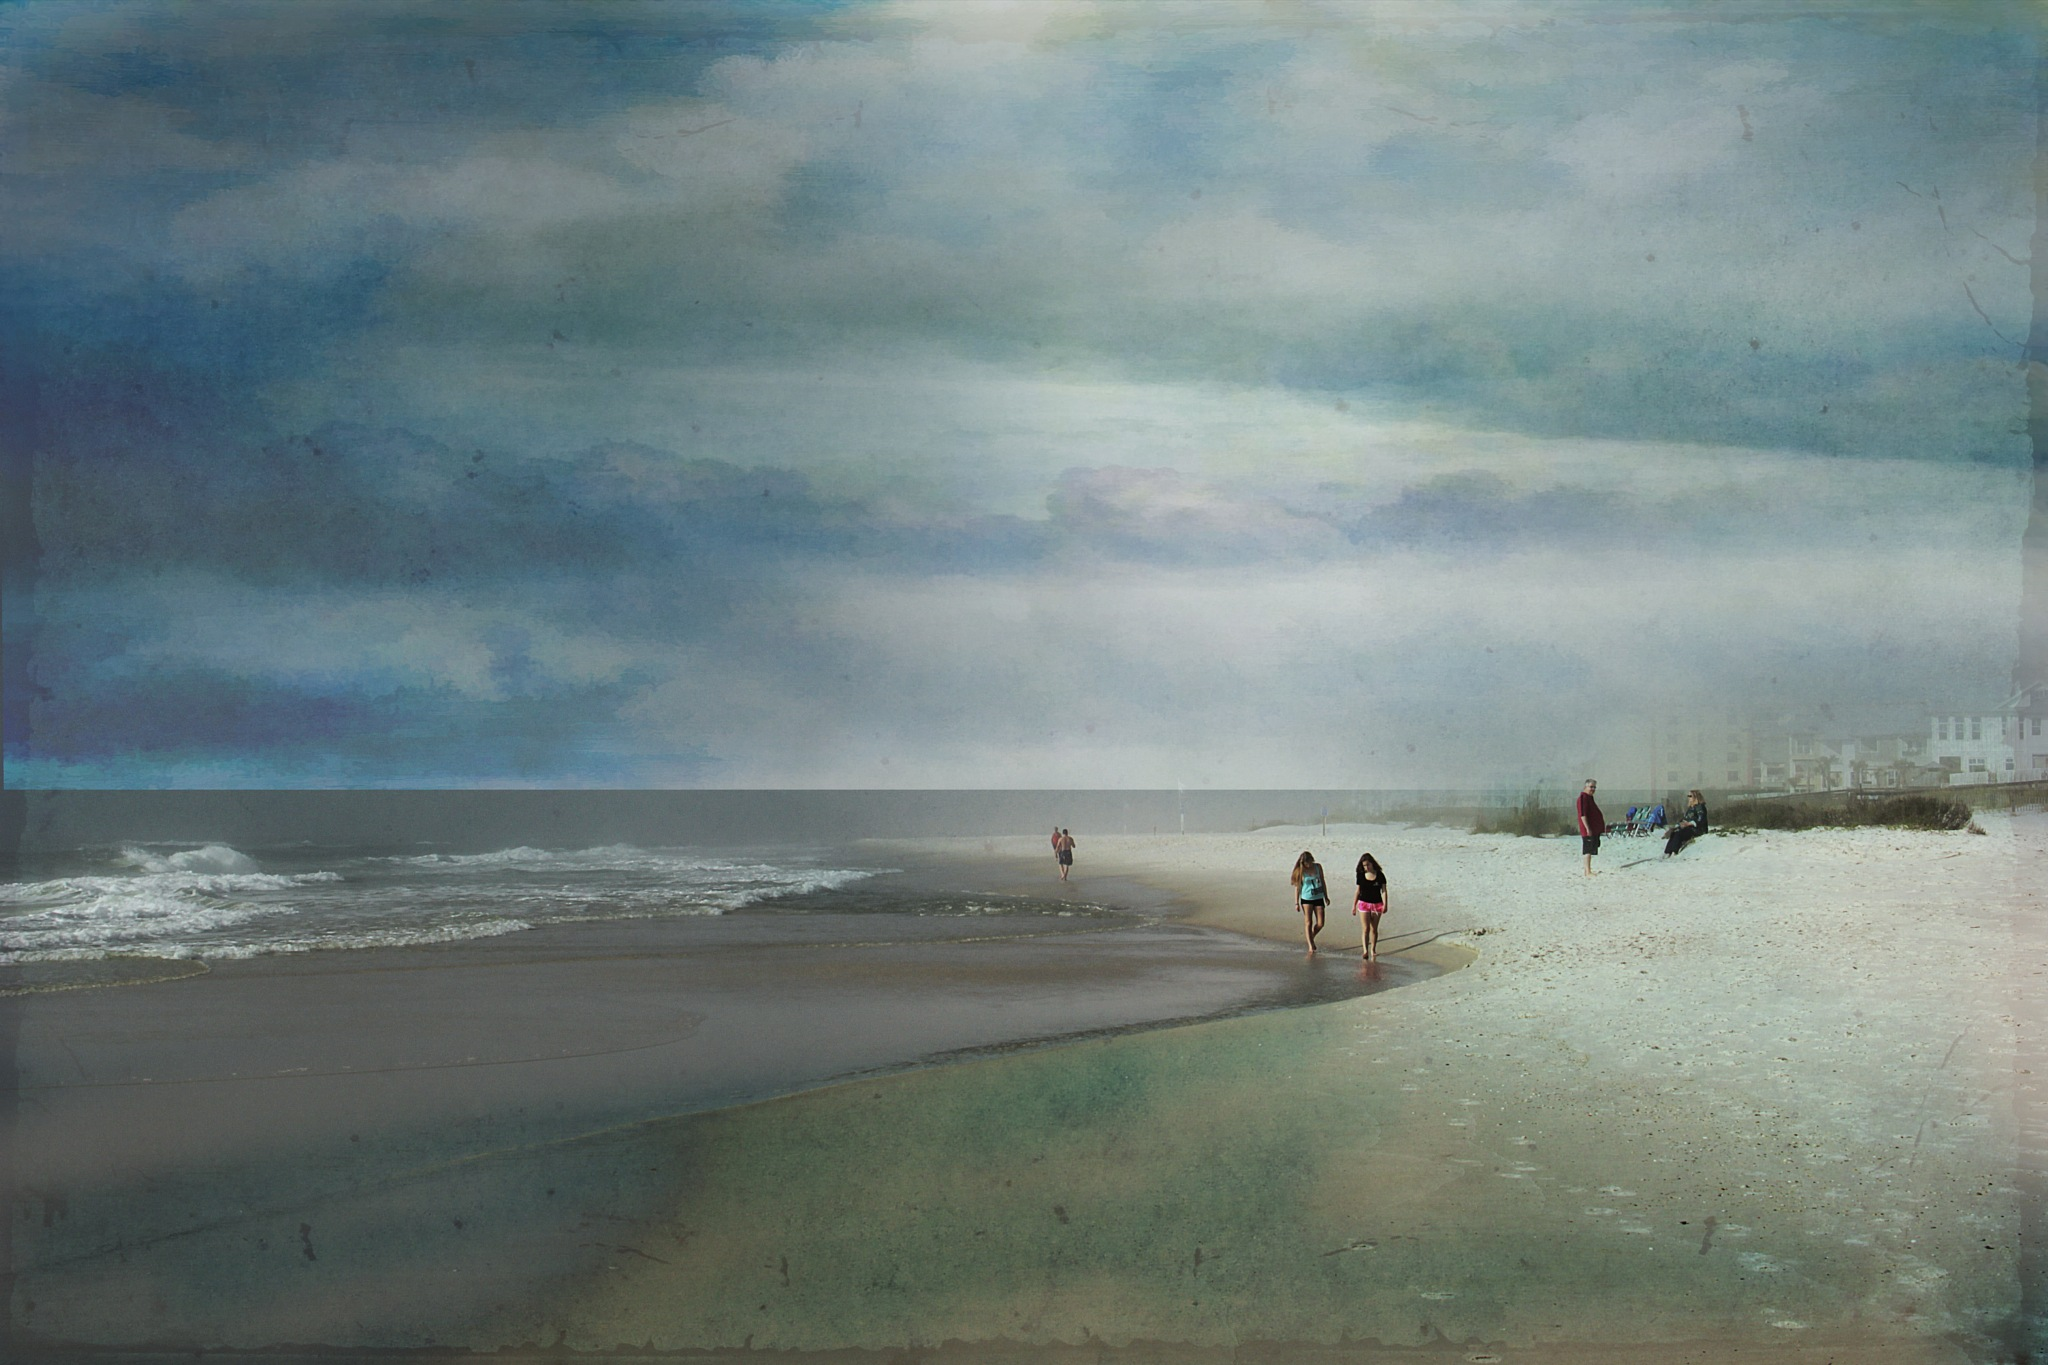 Along the Beach by kstand